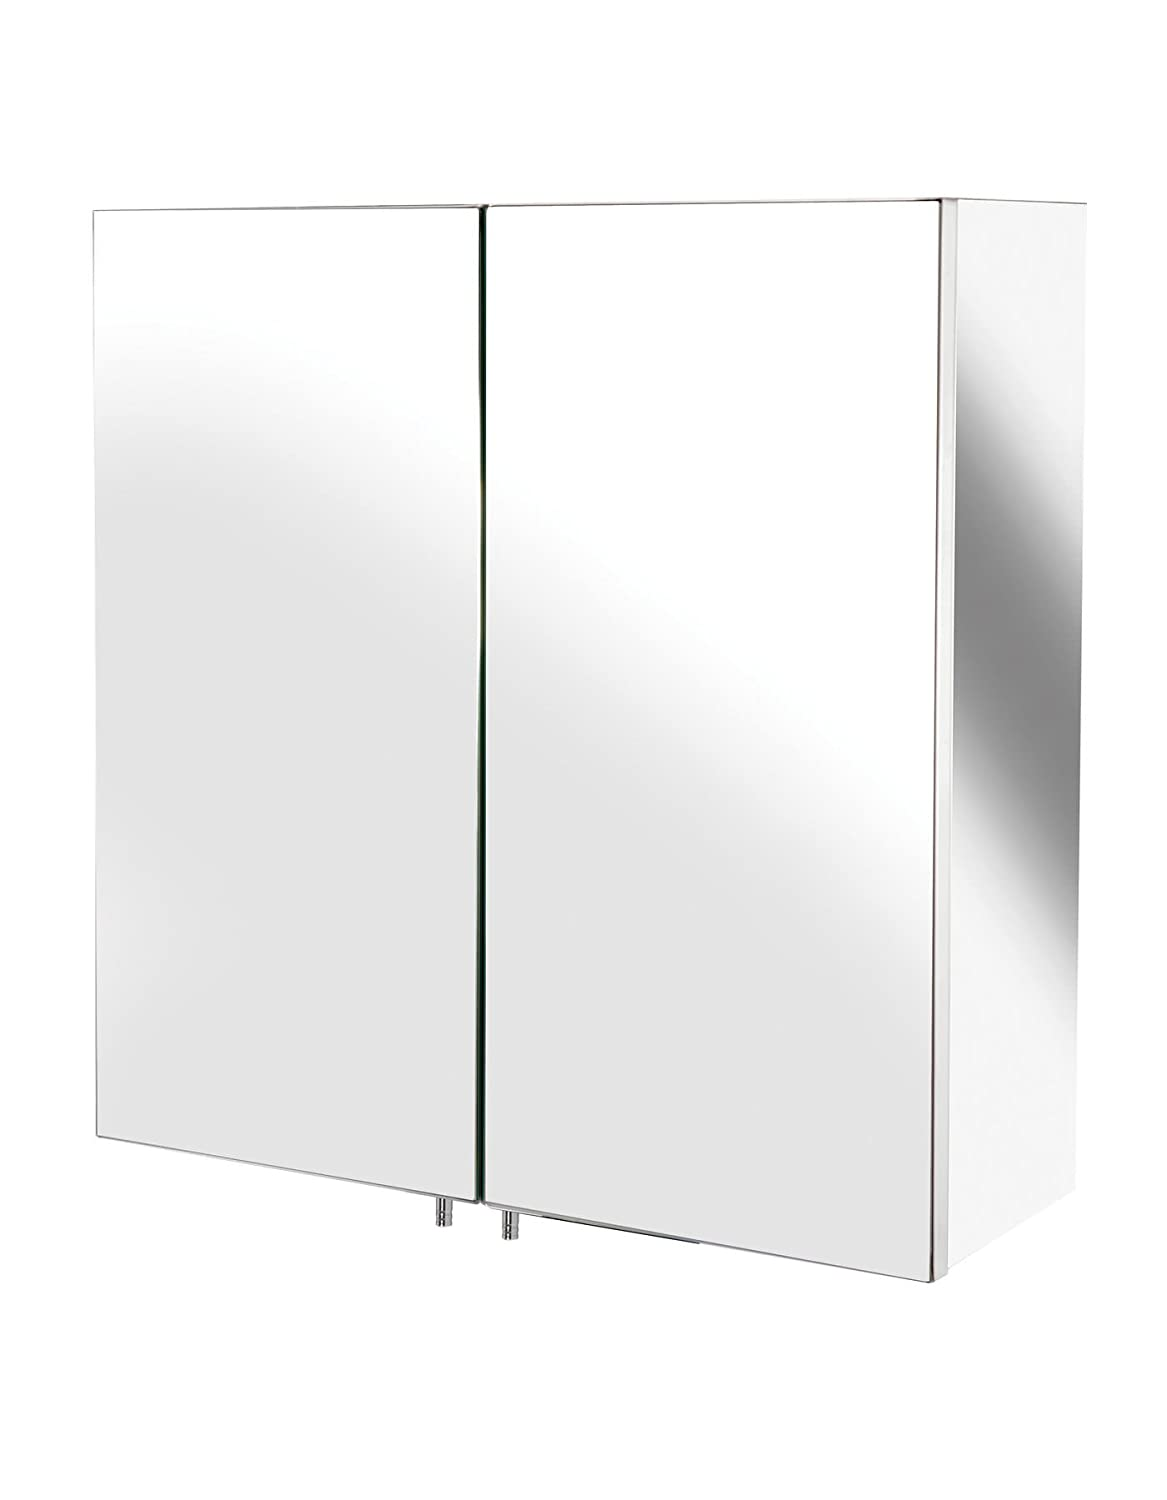 Bathroom Mirror Cabinet Wall Storage Furniture 600 X 550 Mounted Hung  Recessed Large Modern Designer Glass 2 Door With Stainless Steel Frame